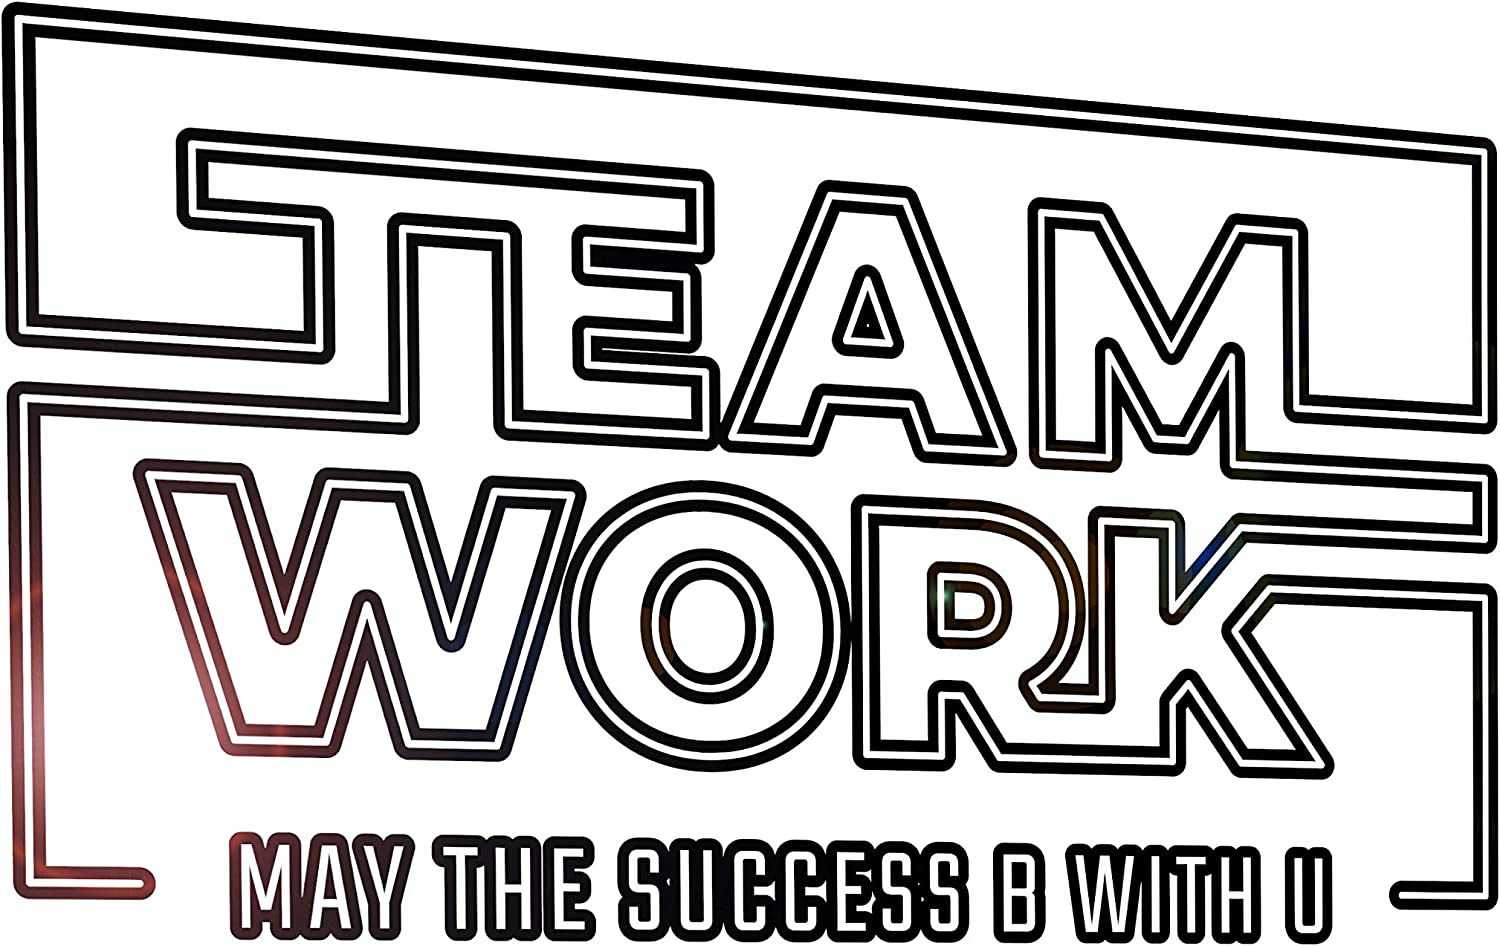 Vinyl Wall Decal Words Teamwork Star Wars Work Office Stickers Mural 33 in x 17.5 in gz237